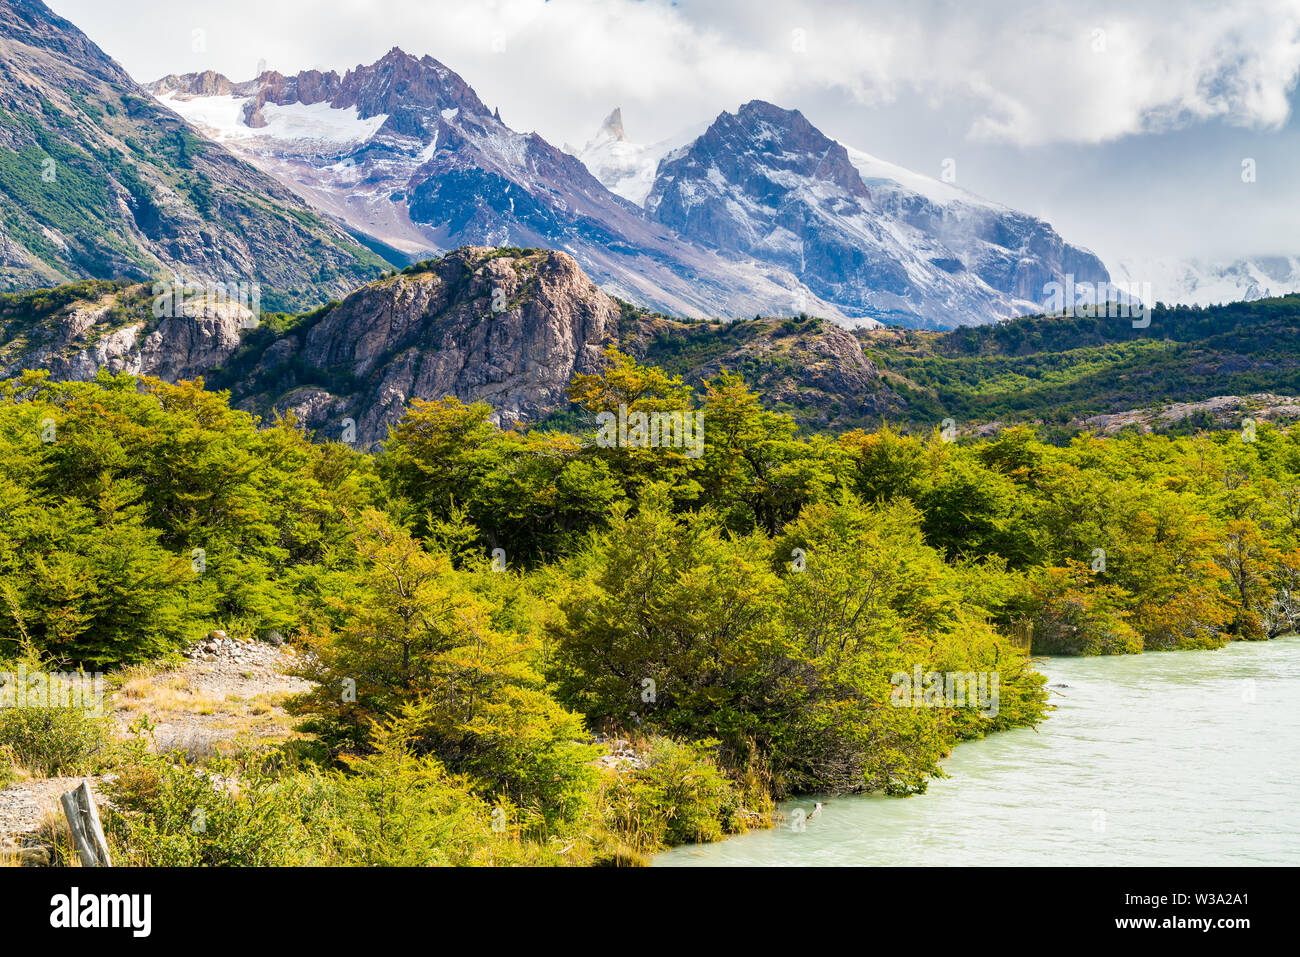 View of beautiful mountain with river in Los Glaciares National Park at El Chalten in Argentine Patagonia - Stock Image